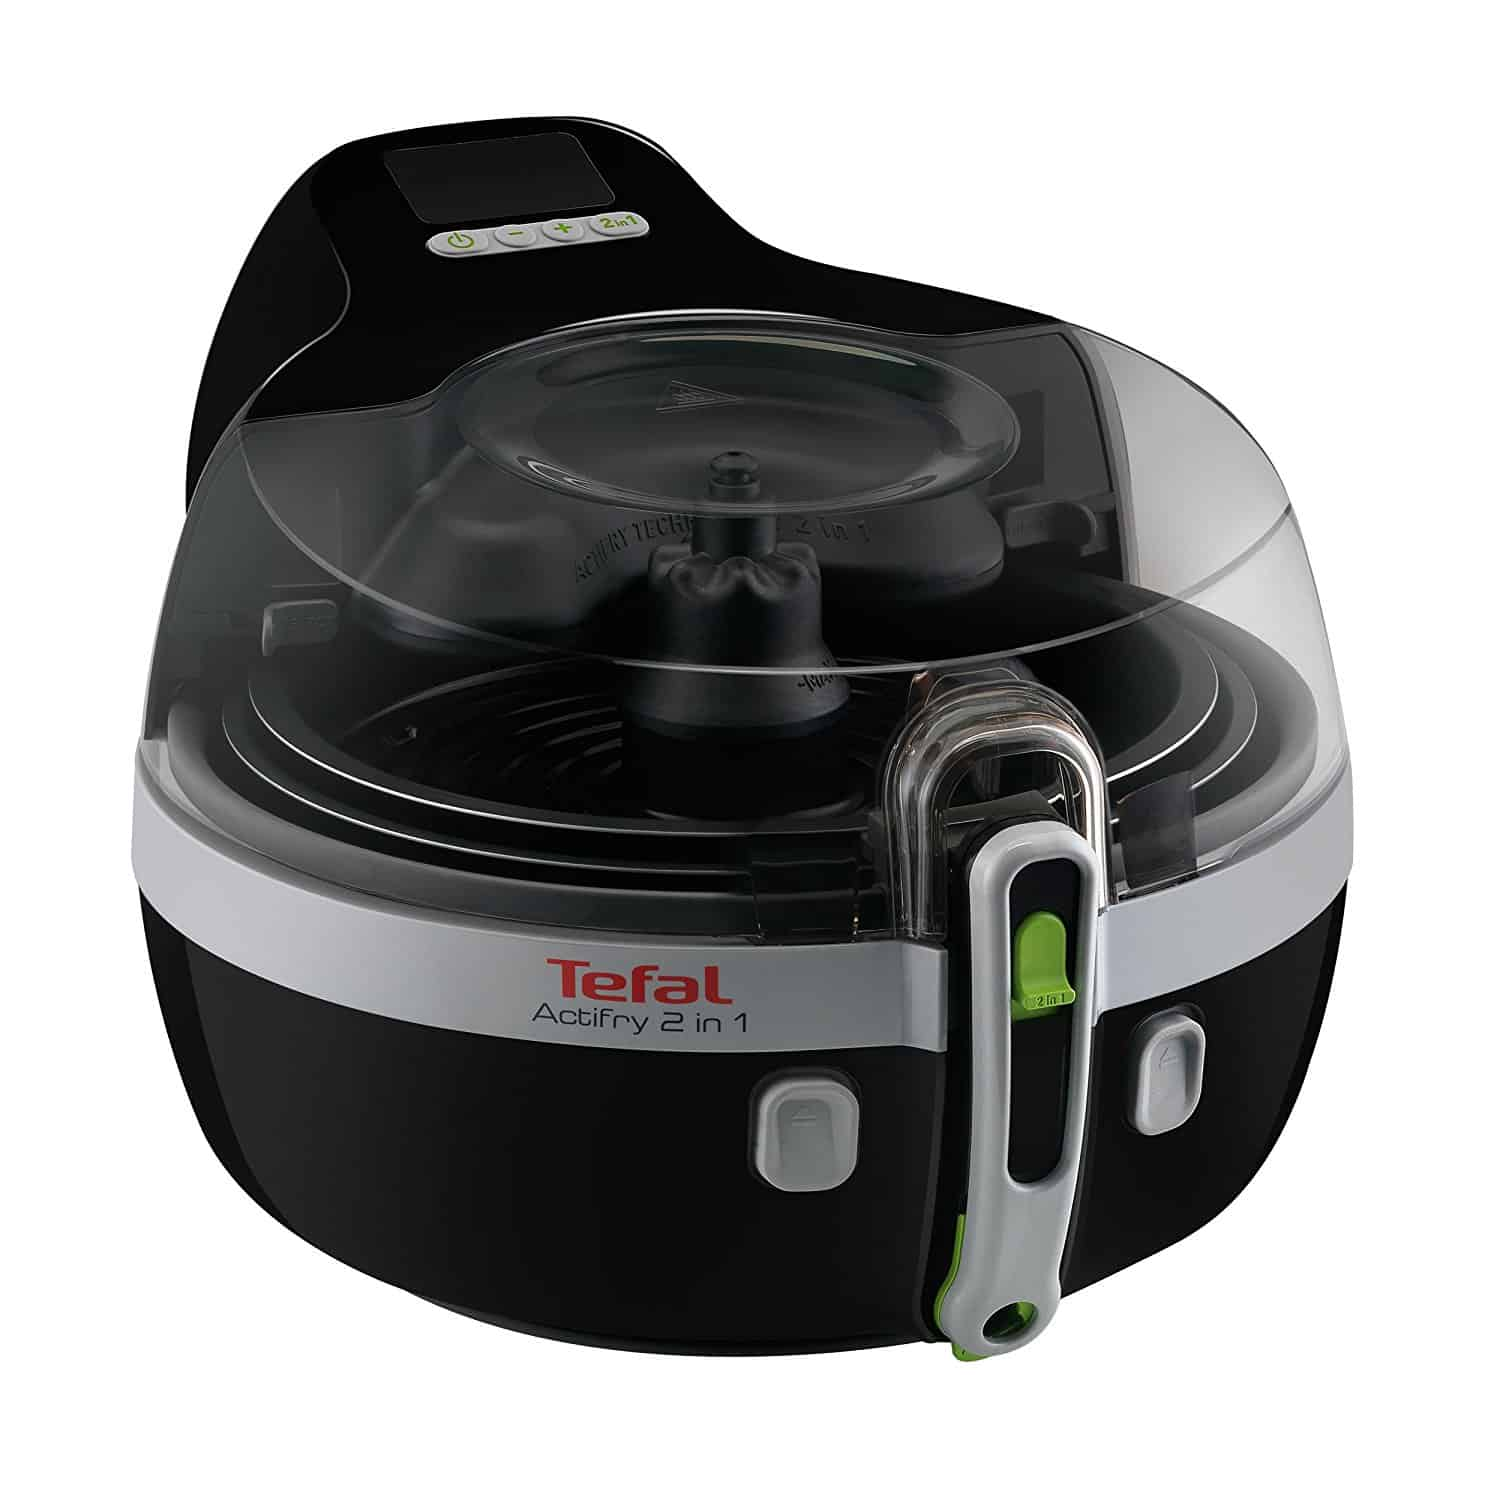 Tefal Actifry Yv960130 2in1 Hei 223 Luft Fritteuse Haushalts